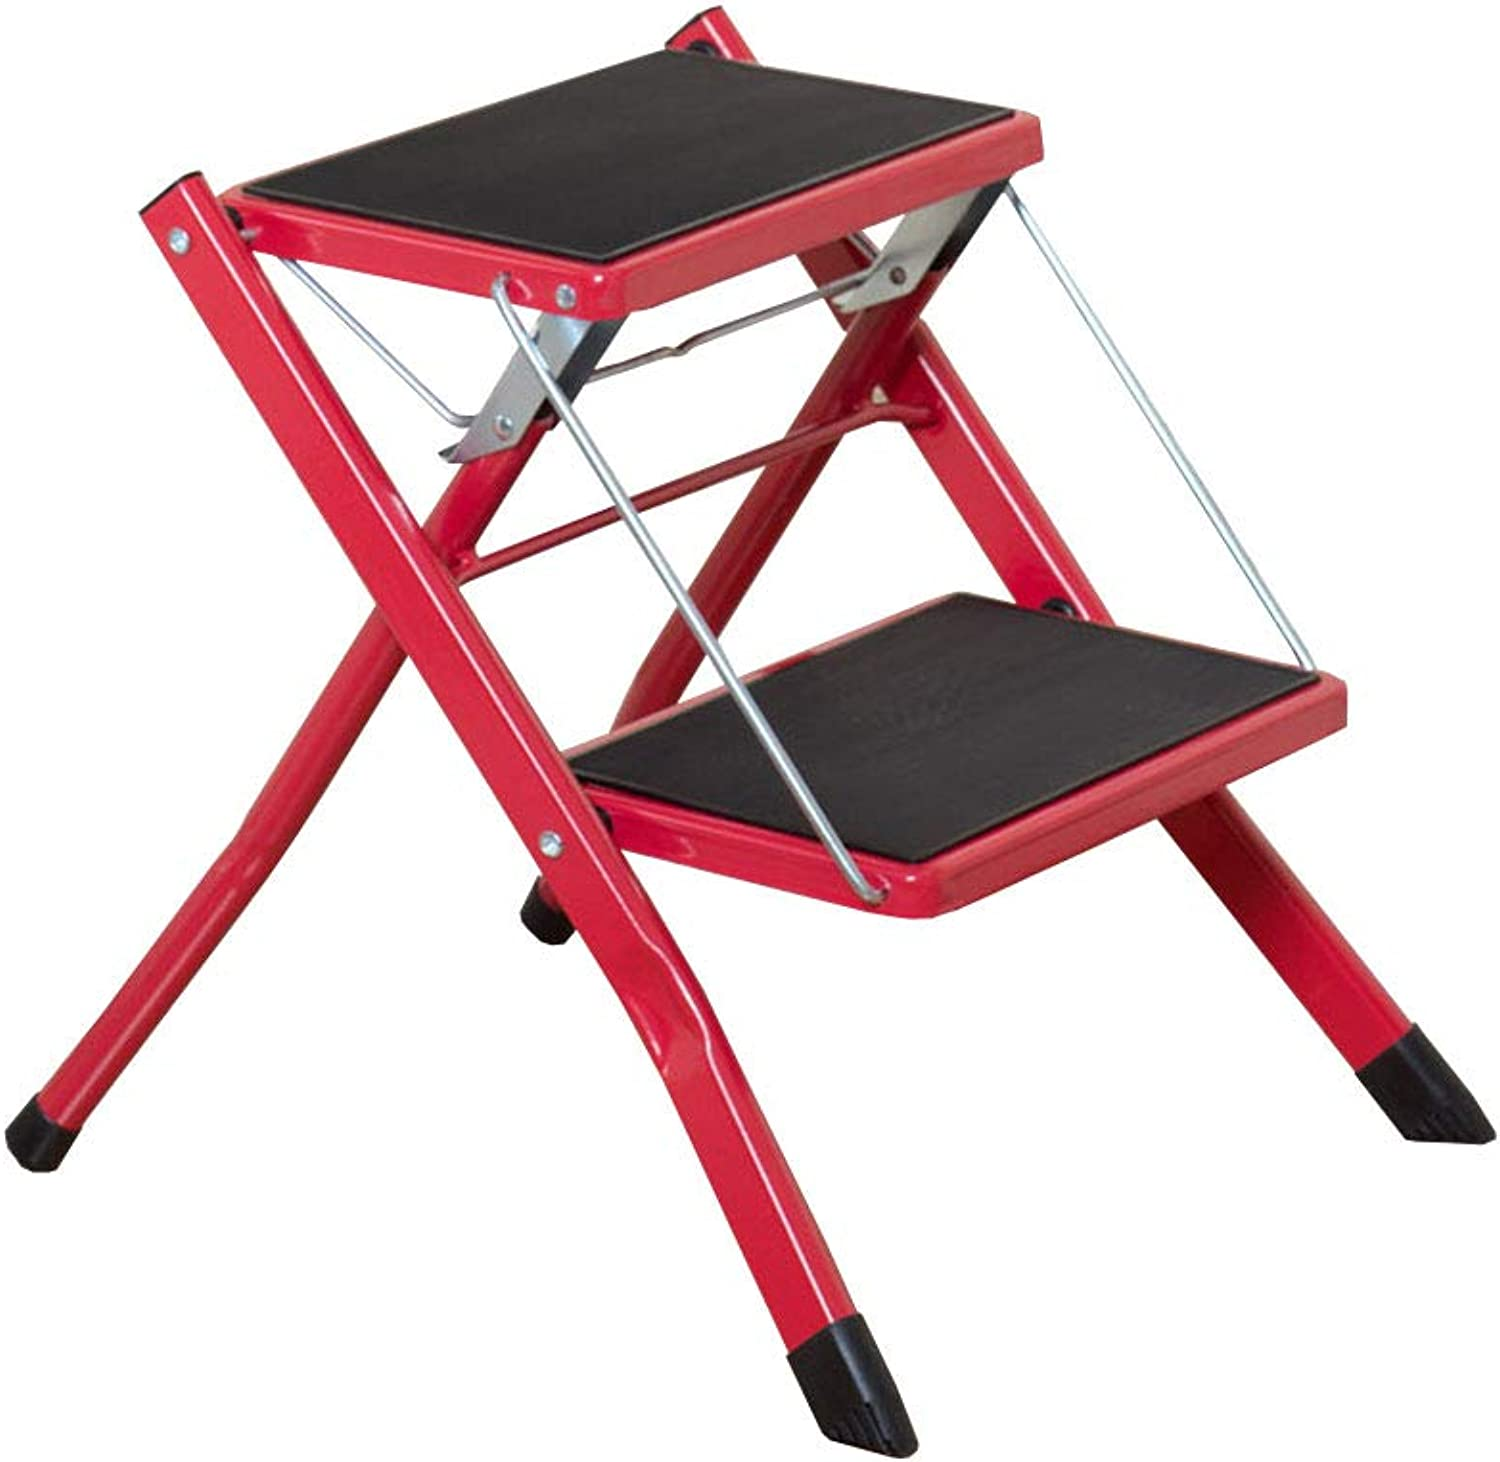 Folding 2 Step Ladder Stool Stepladder Step Stool with Non-Slip Pedal for Household Work Use(42  48  41.5cm)